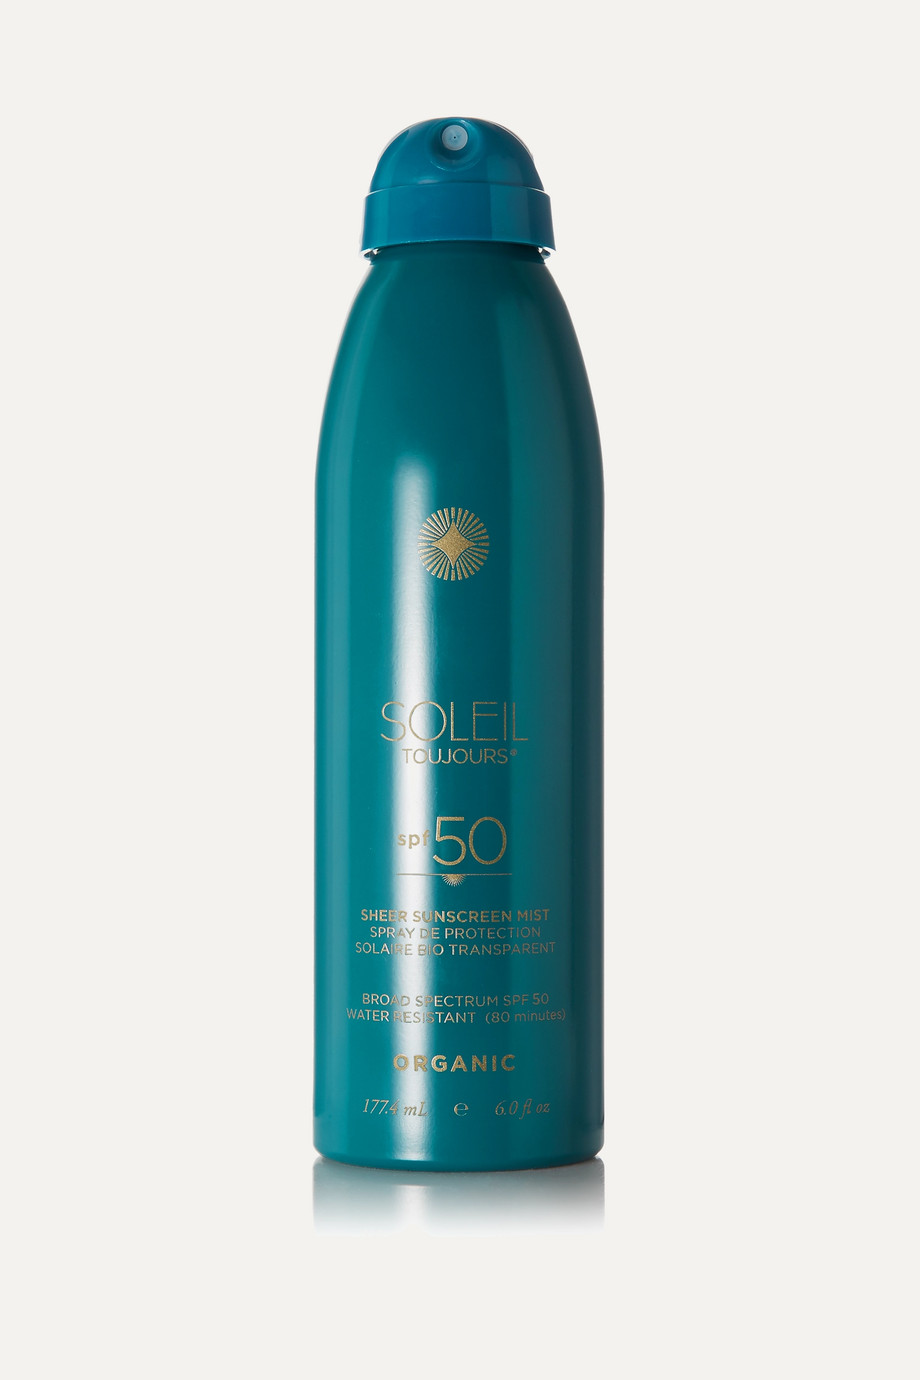 Soleil Toujours + NET SUSTAIN SPF50 Organic Sheer Sunscreen Mist, 177.4ml